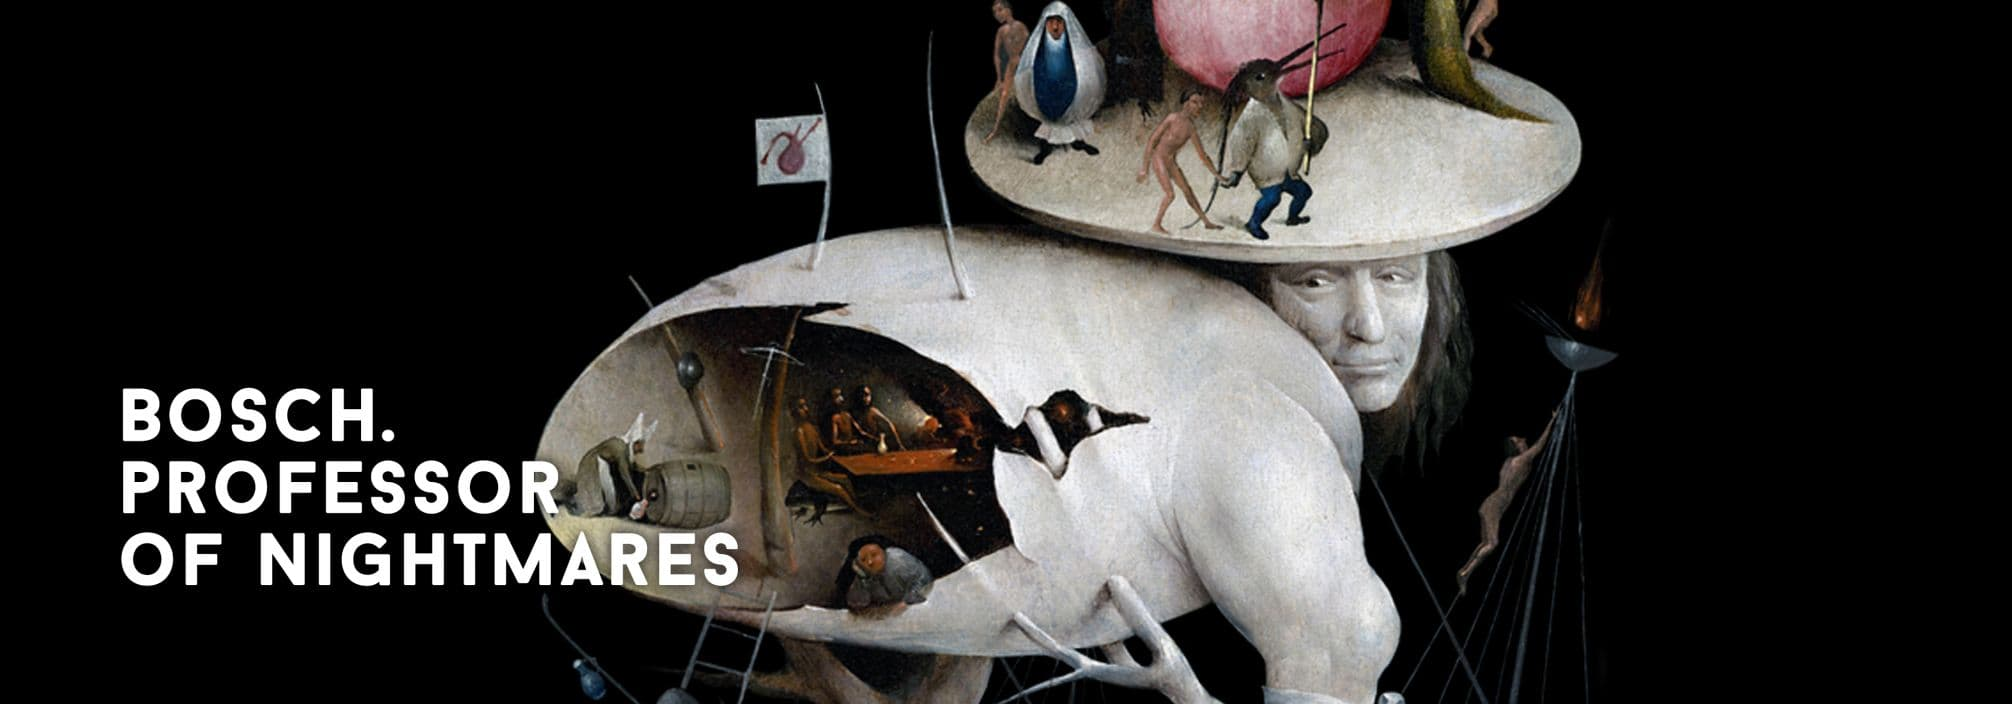 Hieronymus Bosch. Professor of nightmares